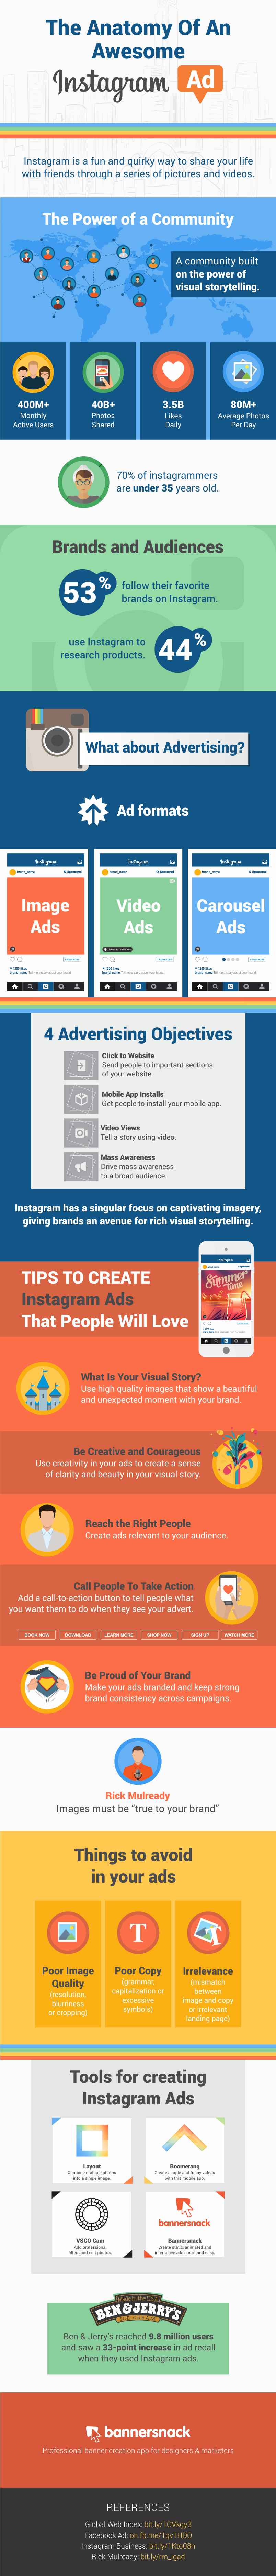 Infographic: The Anatomy Of An Awesome Instagram Ad